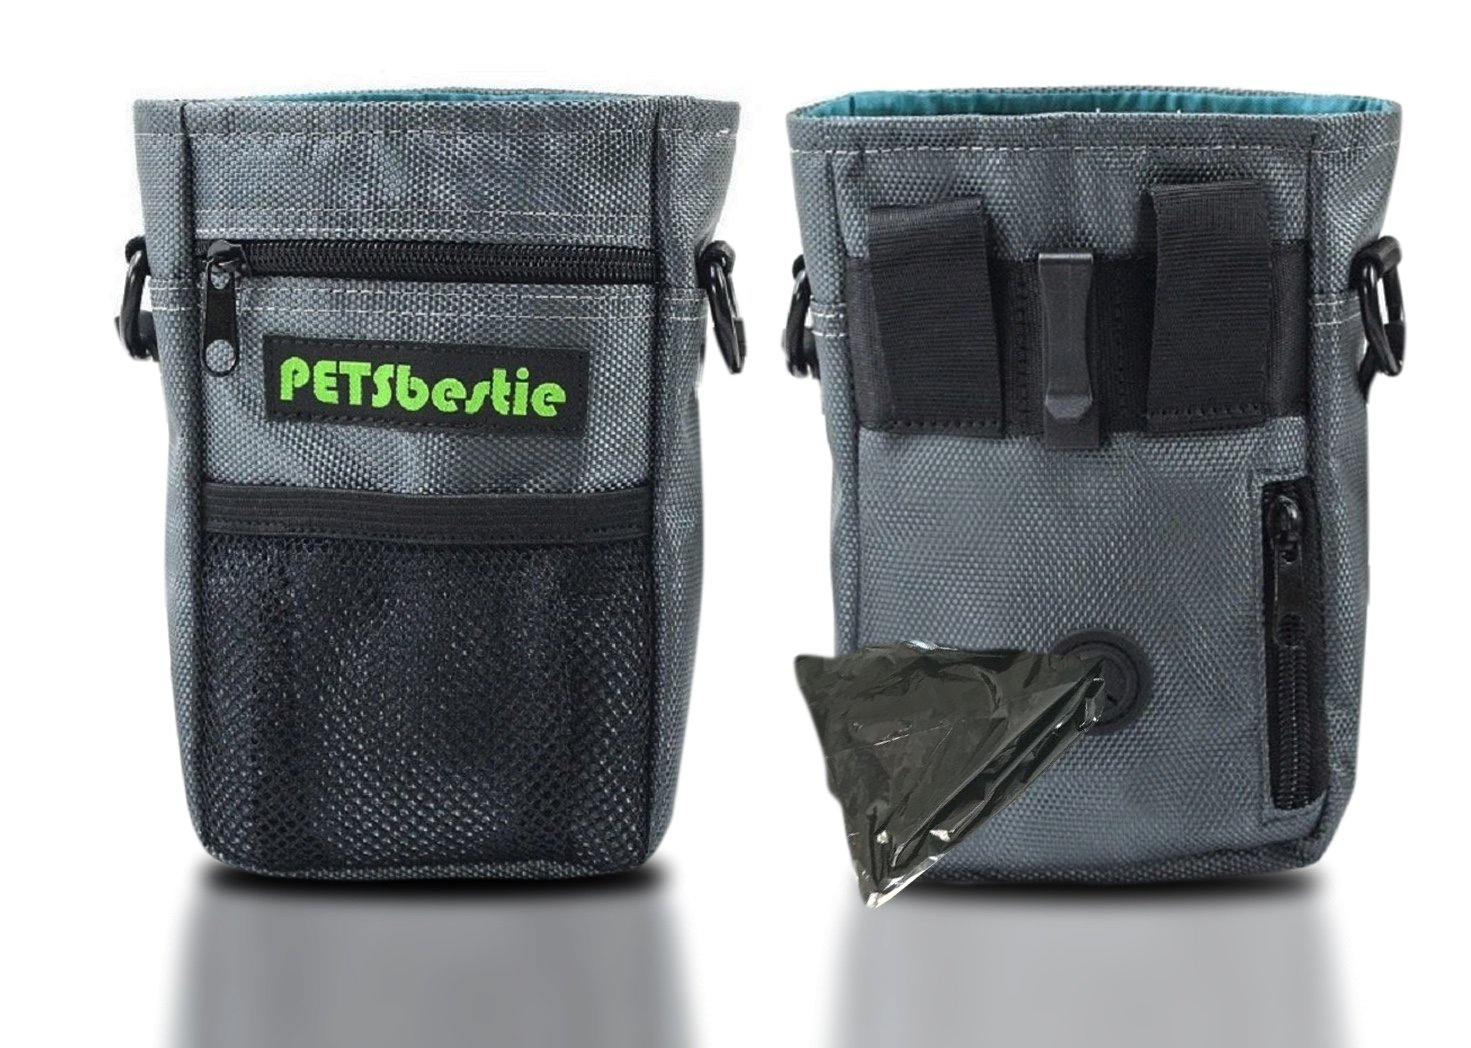 PETSbestie Waterproof Dog Treat Pouch for Training - Dog Pouch with Adjustable Waist Belt or Shoulder Strap - Waste Bags Dispenser - Carries Treats, Toys (Grey Color)